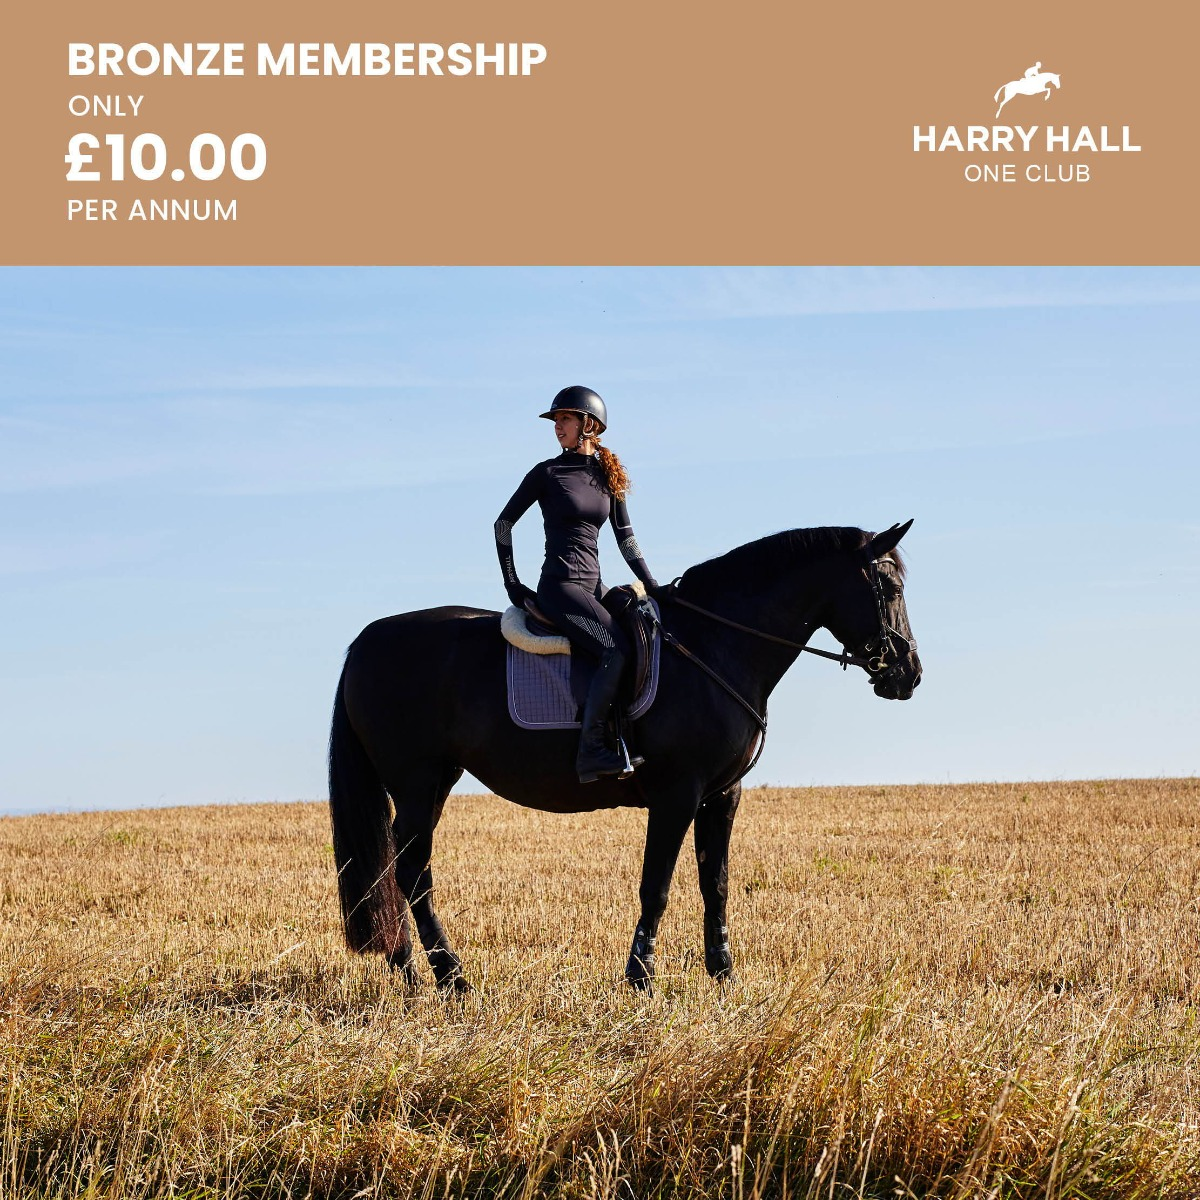 Harry Hall One Club Bronze Membership